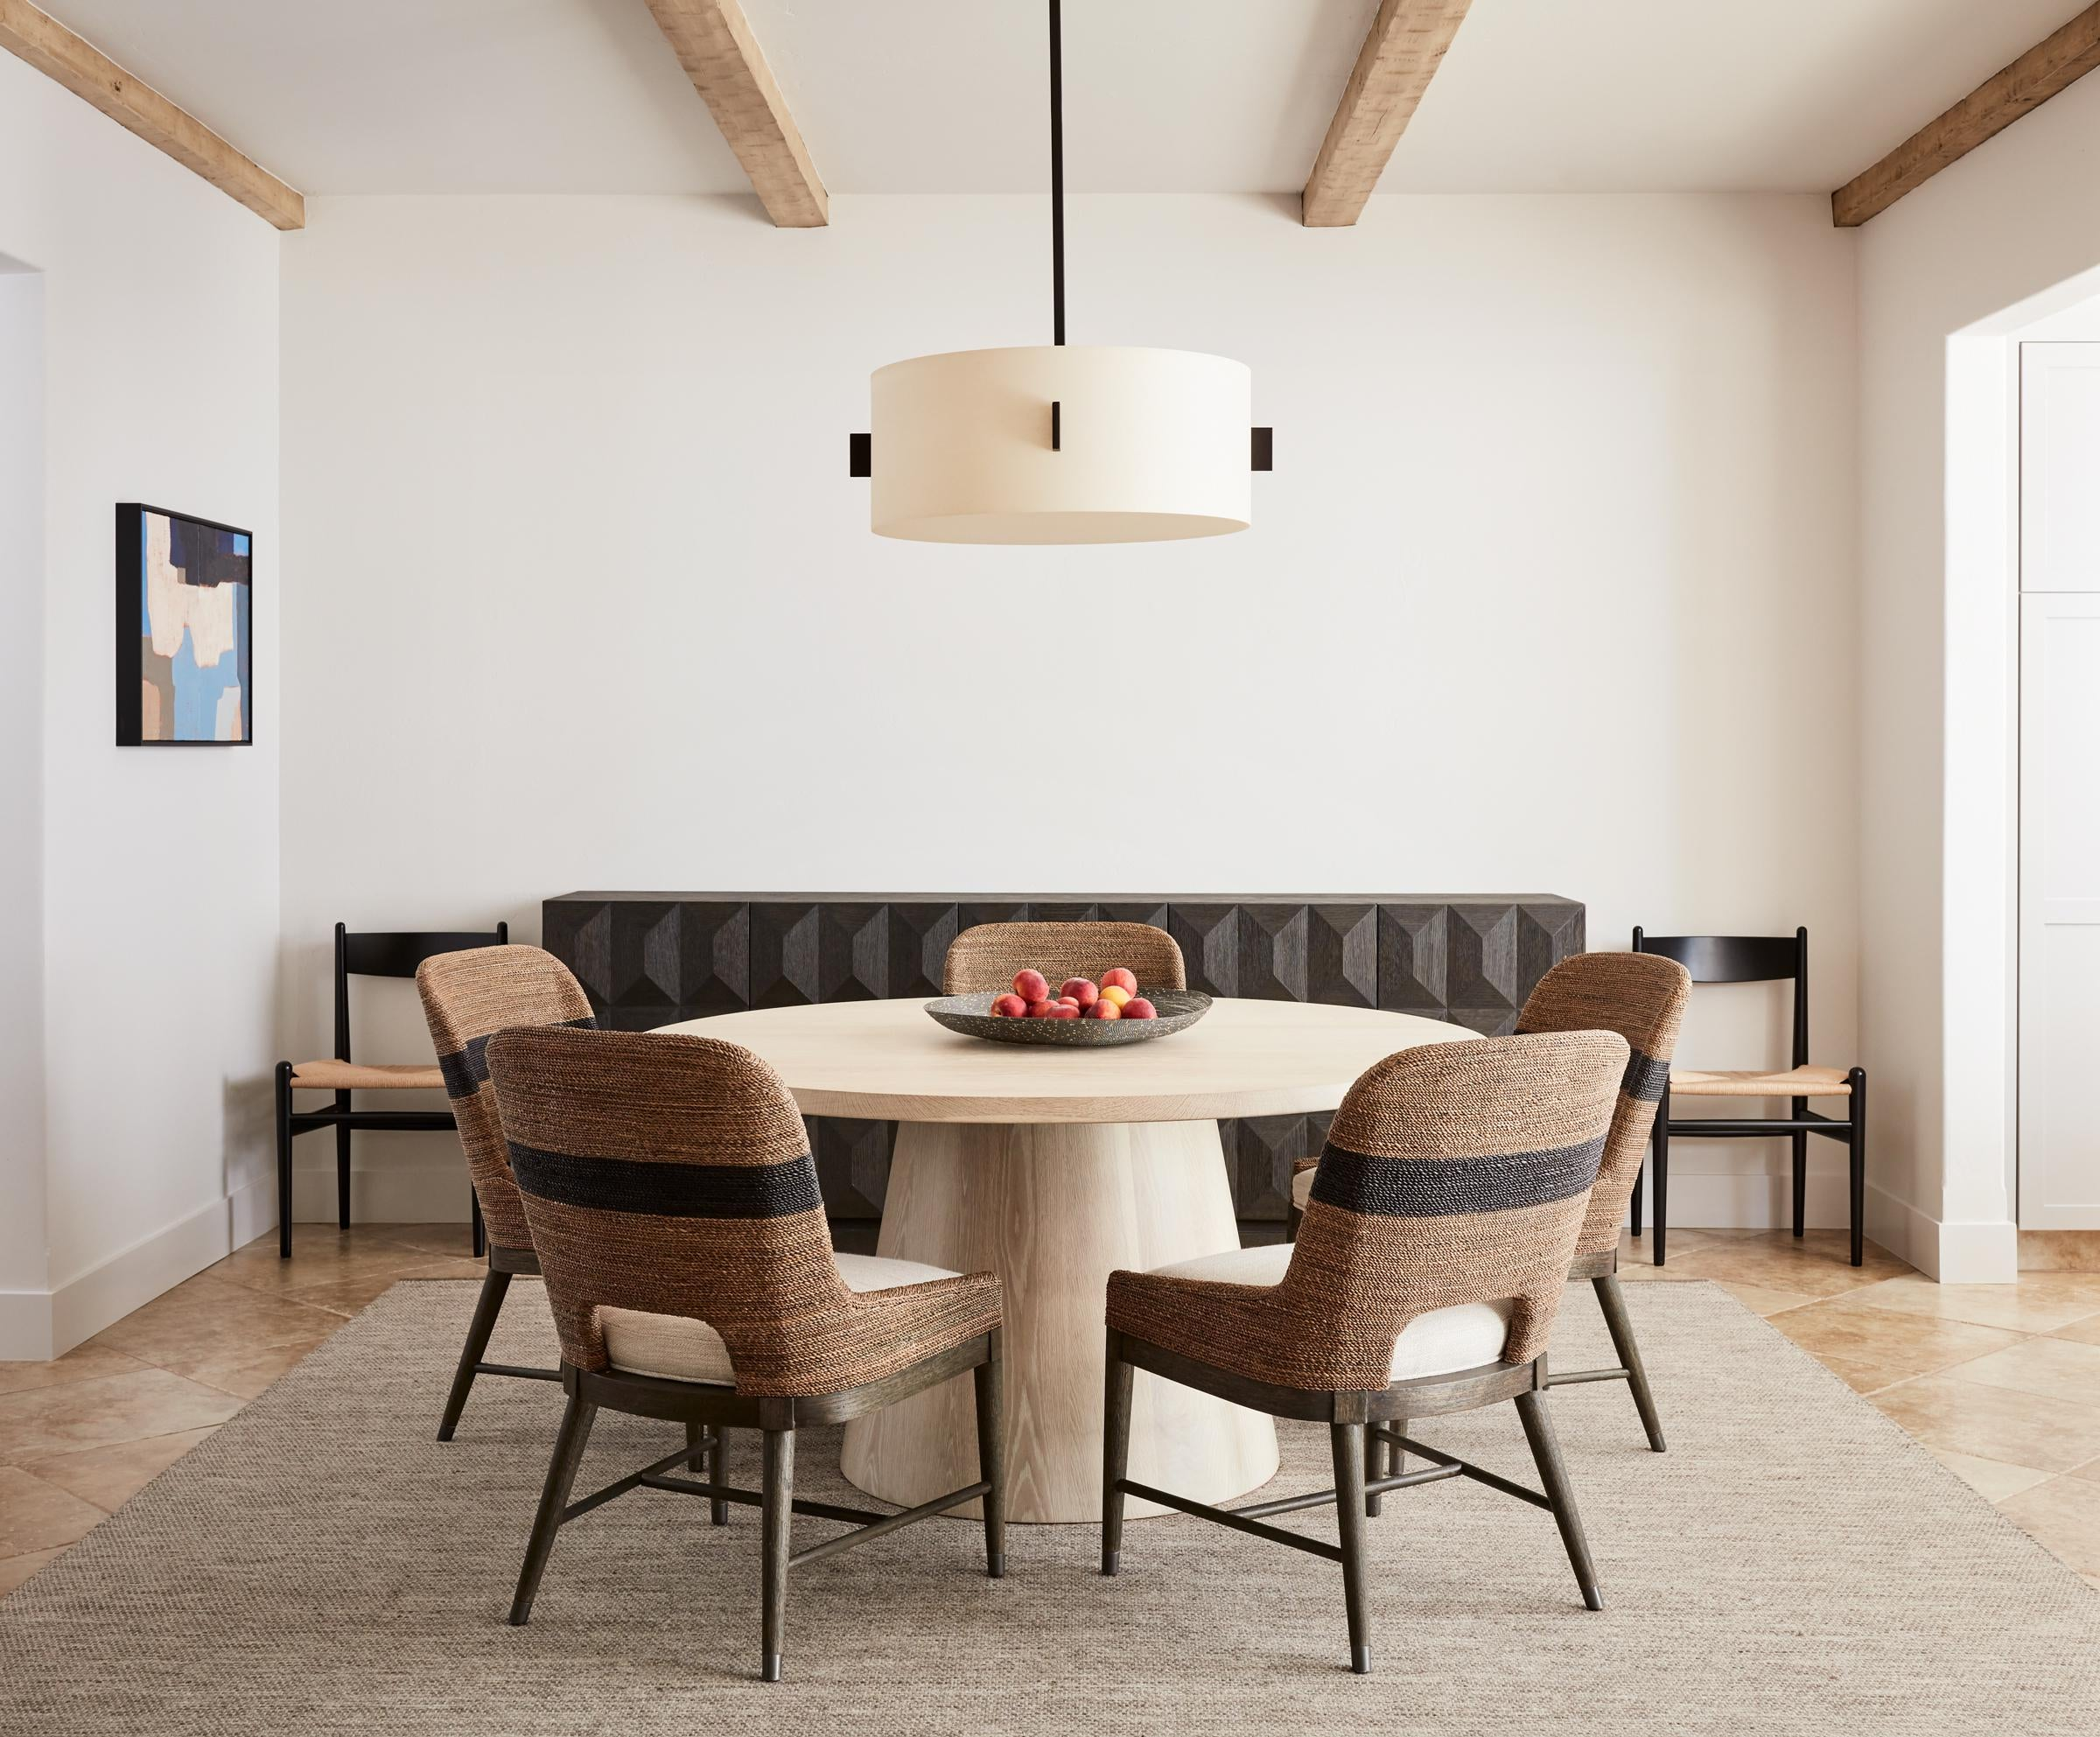 Pebble Beach Dining Room. Exposed Beams, Sideboard, And Round Dining Table.